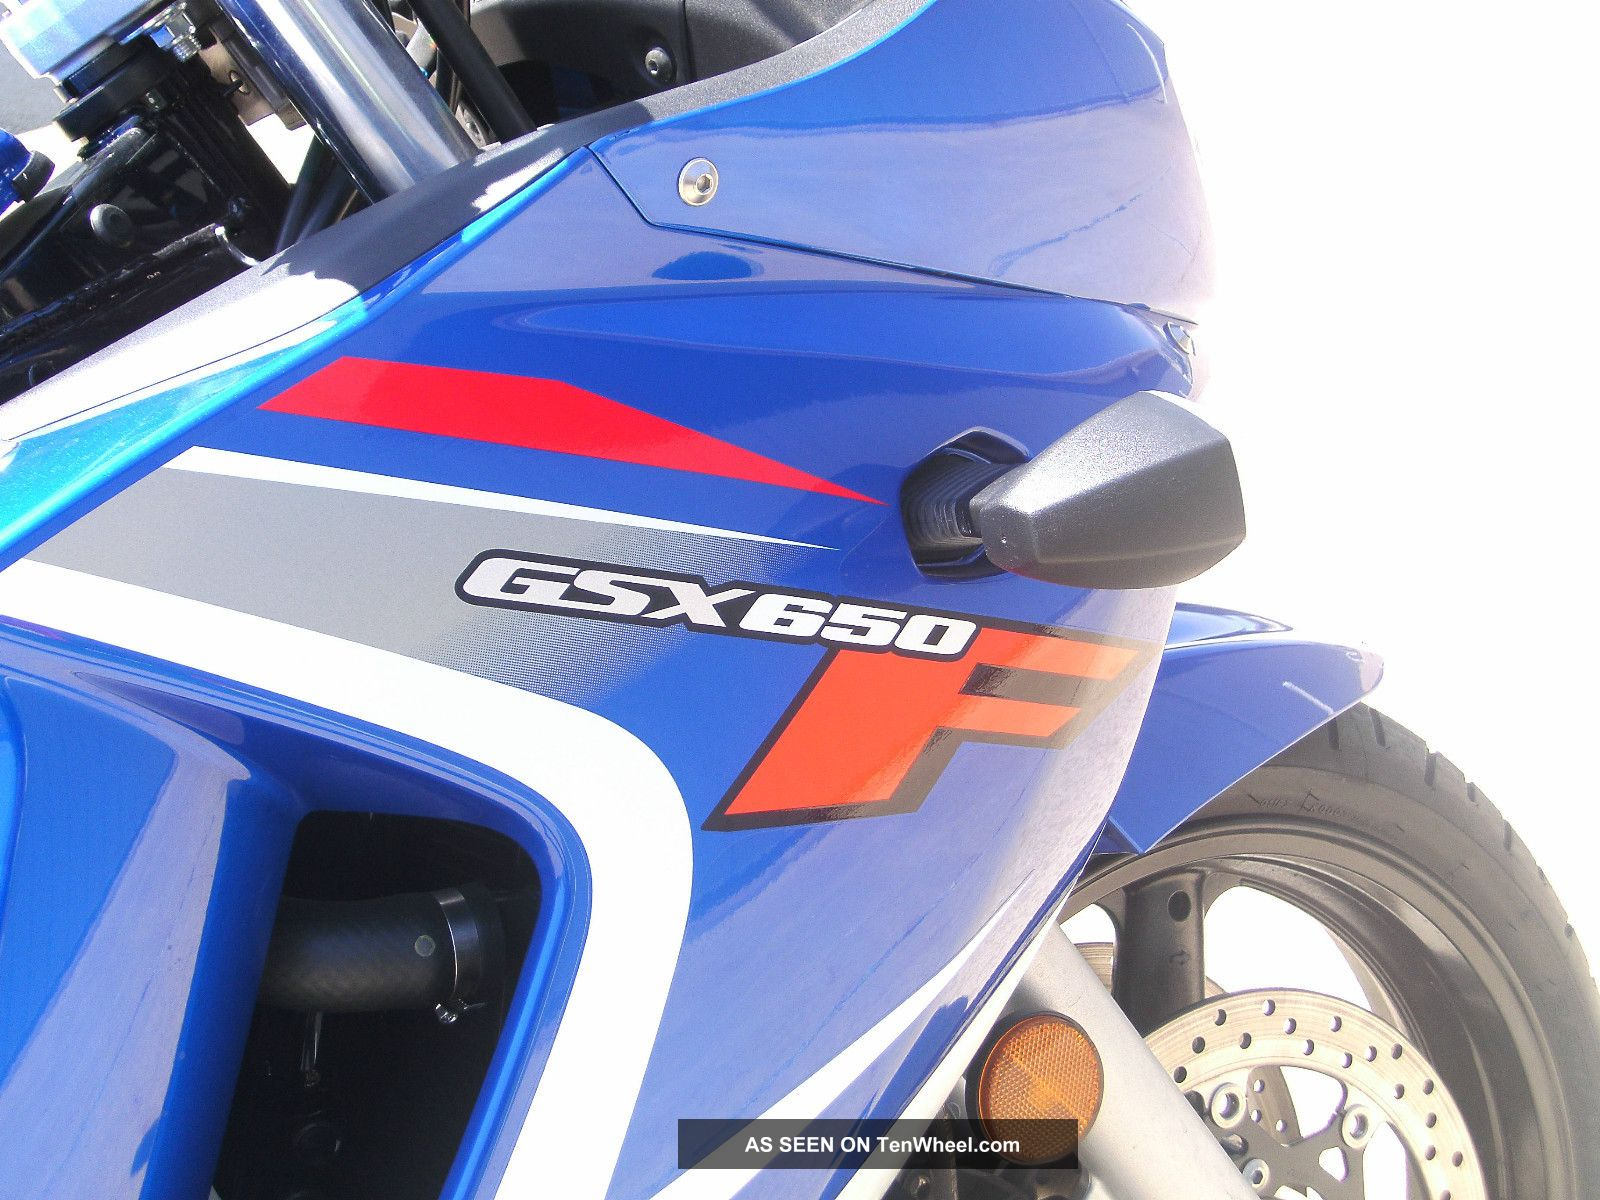 2008 Suzuki Gsx650f,  Blue GSX / Katana photo